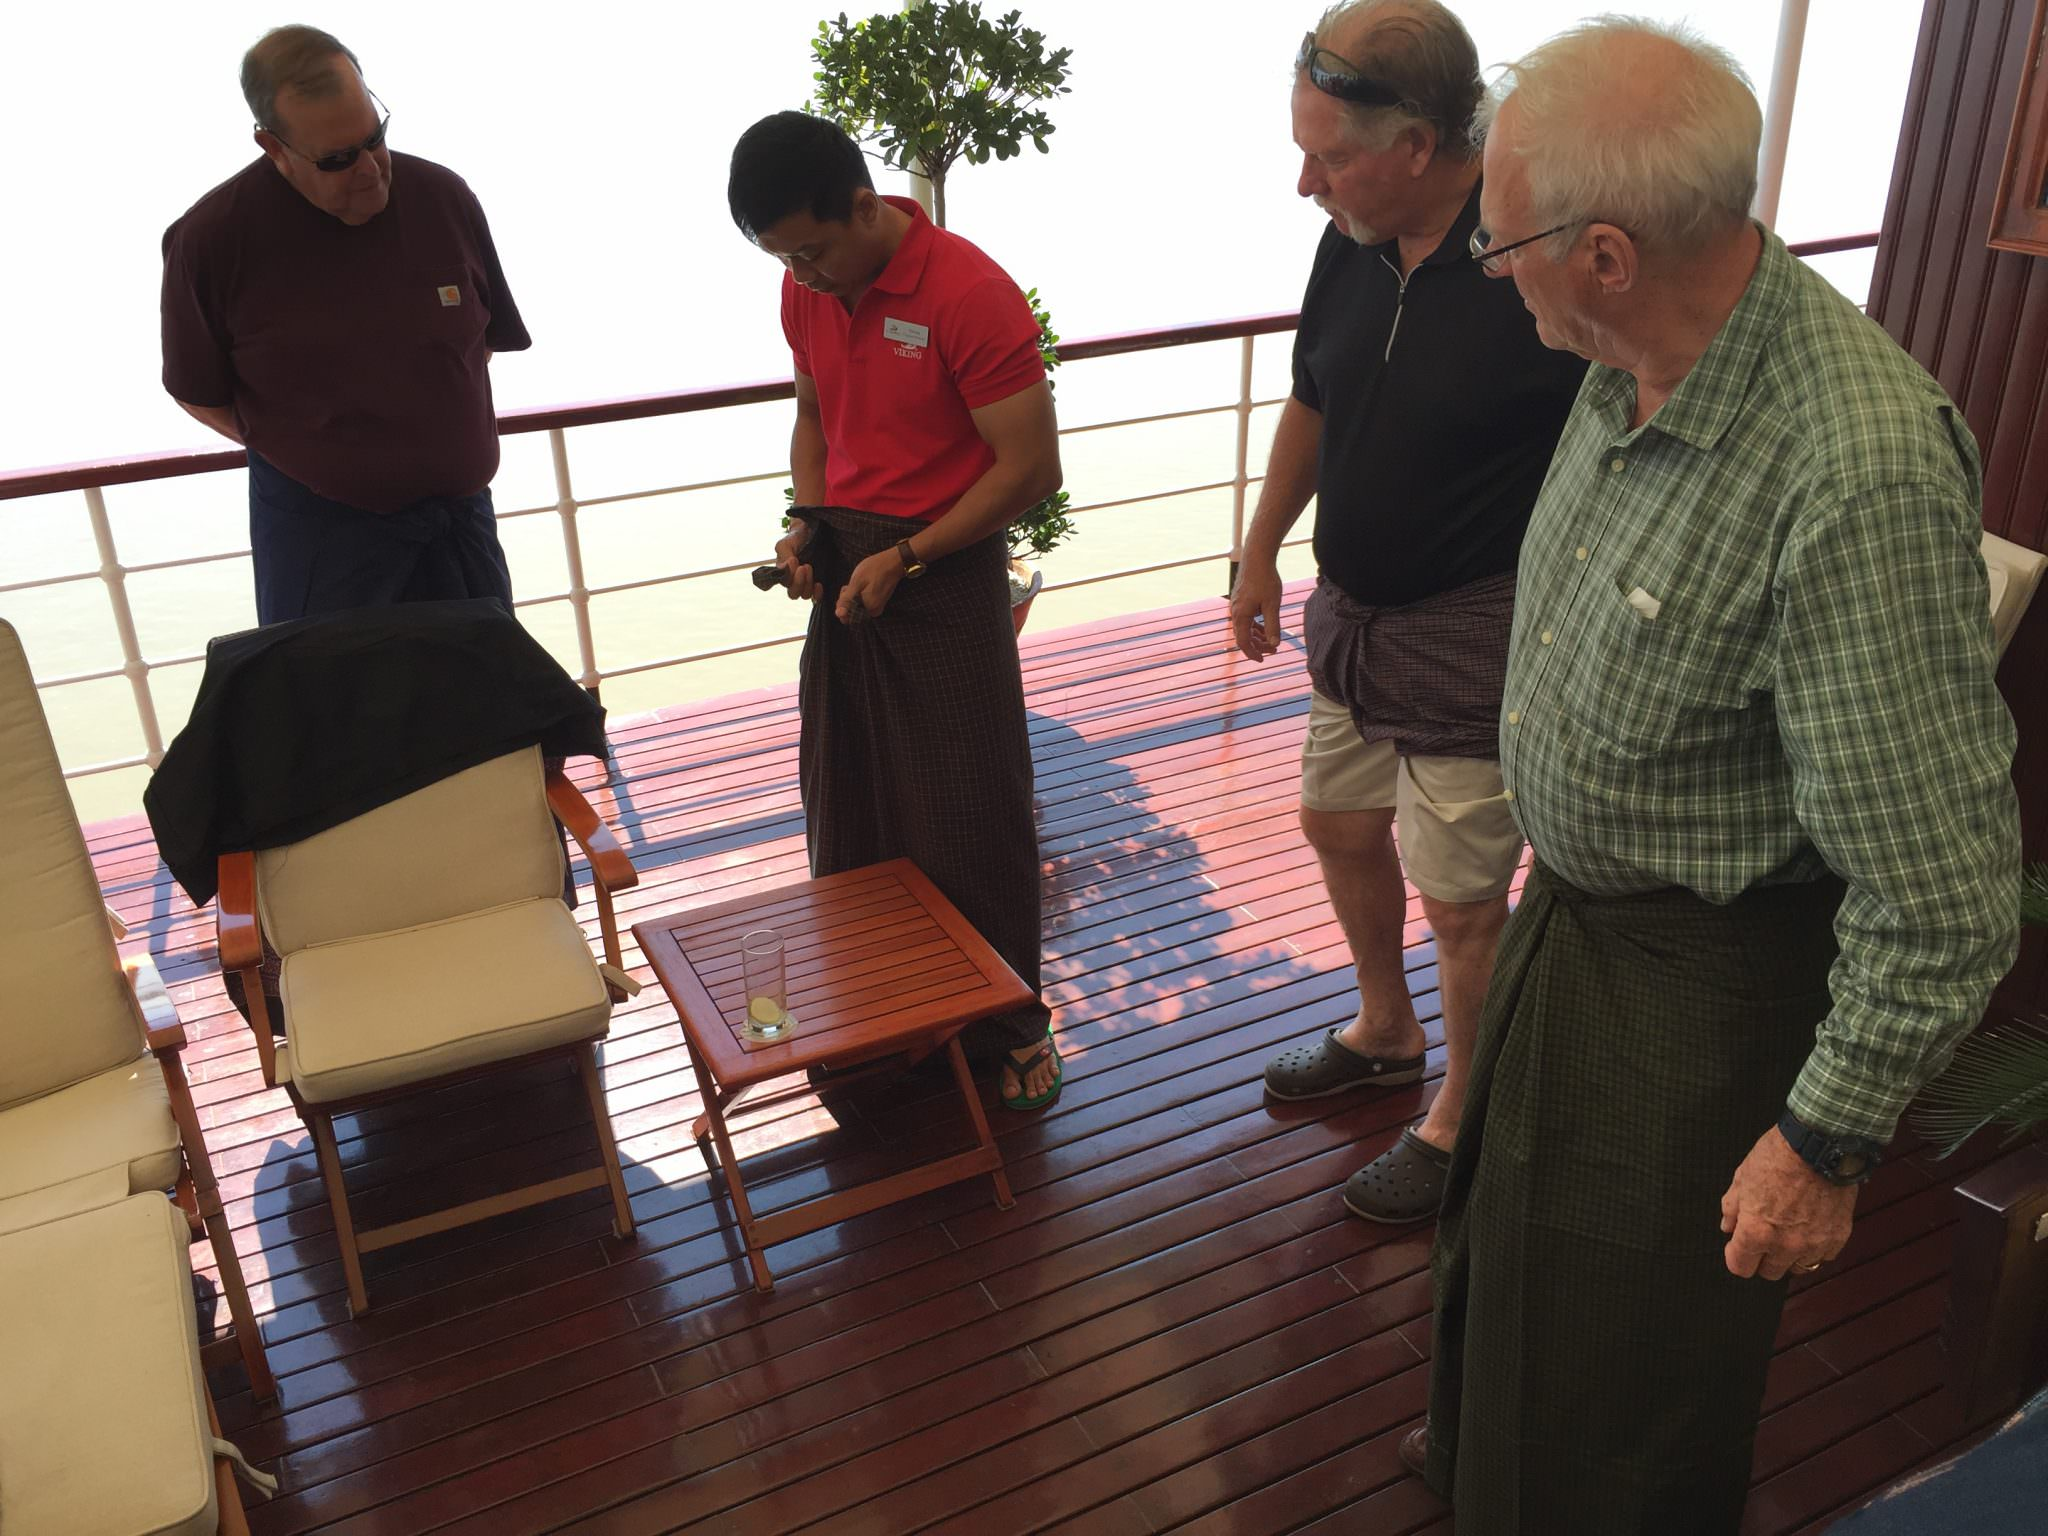 Fellow passengers attempt to wrap and tie their longhis, with one guest going full girding (used when playing sports). Most of the men found them very comfortable and two men wore them to dinner on the ship that night. © 2015 Gail Jessen